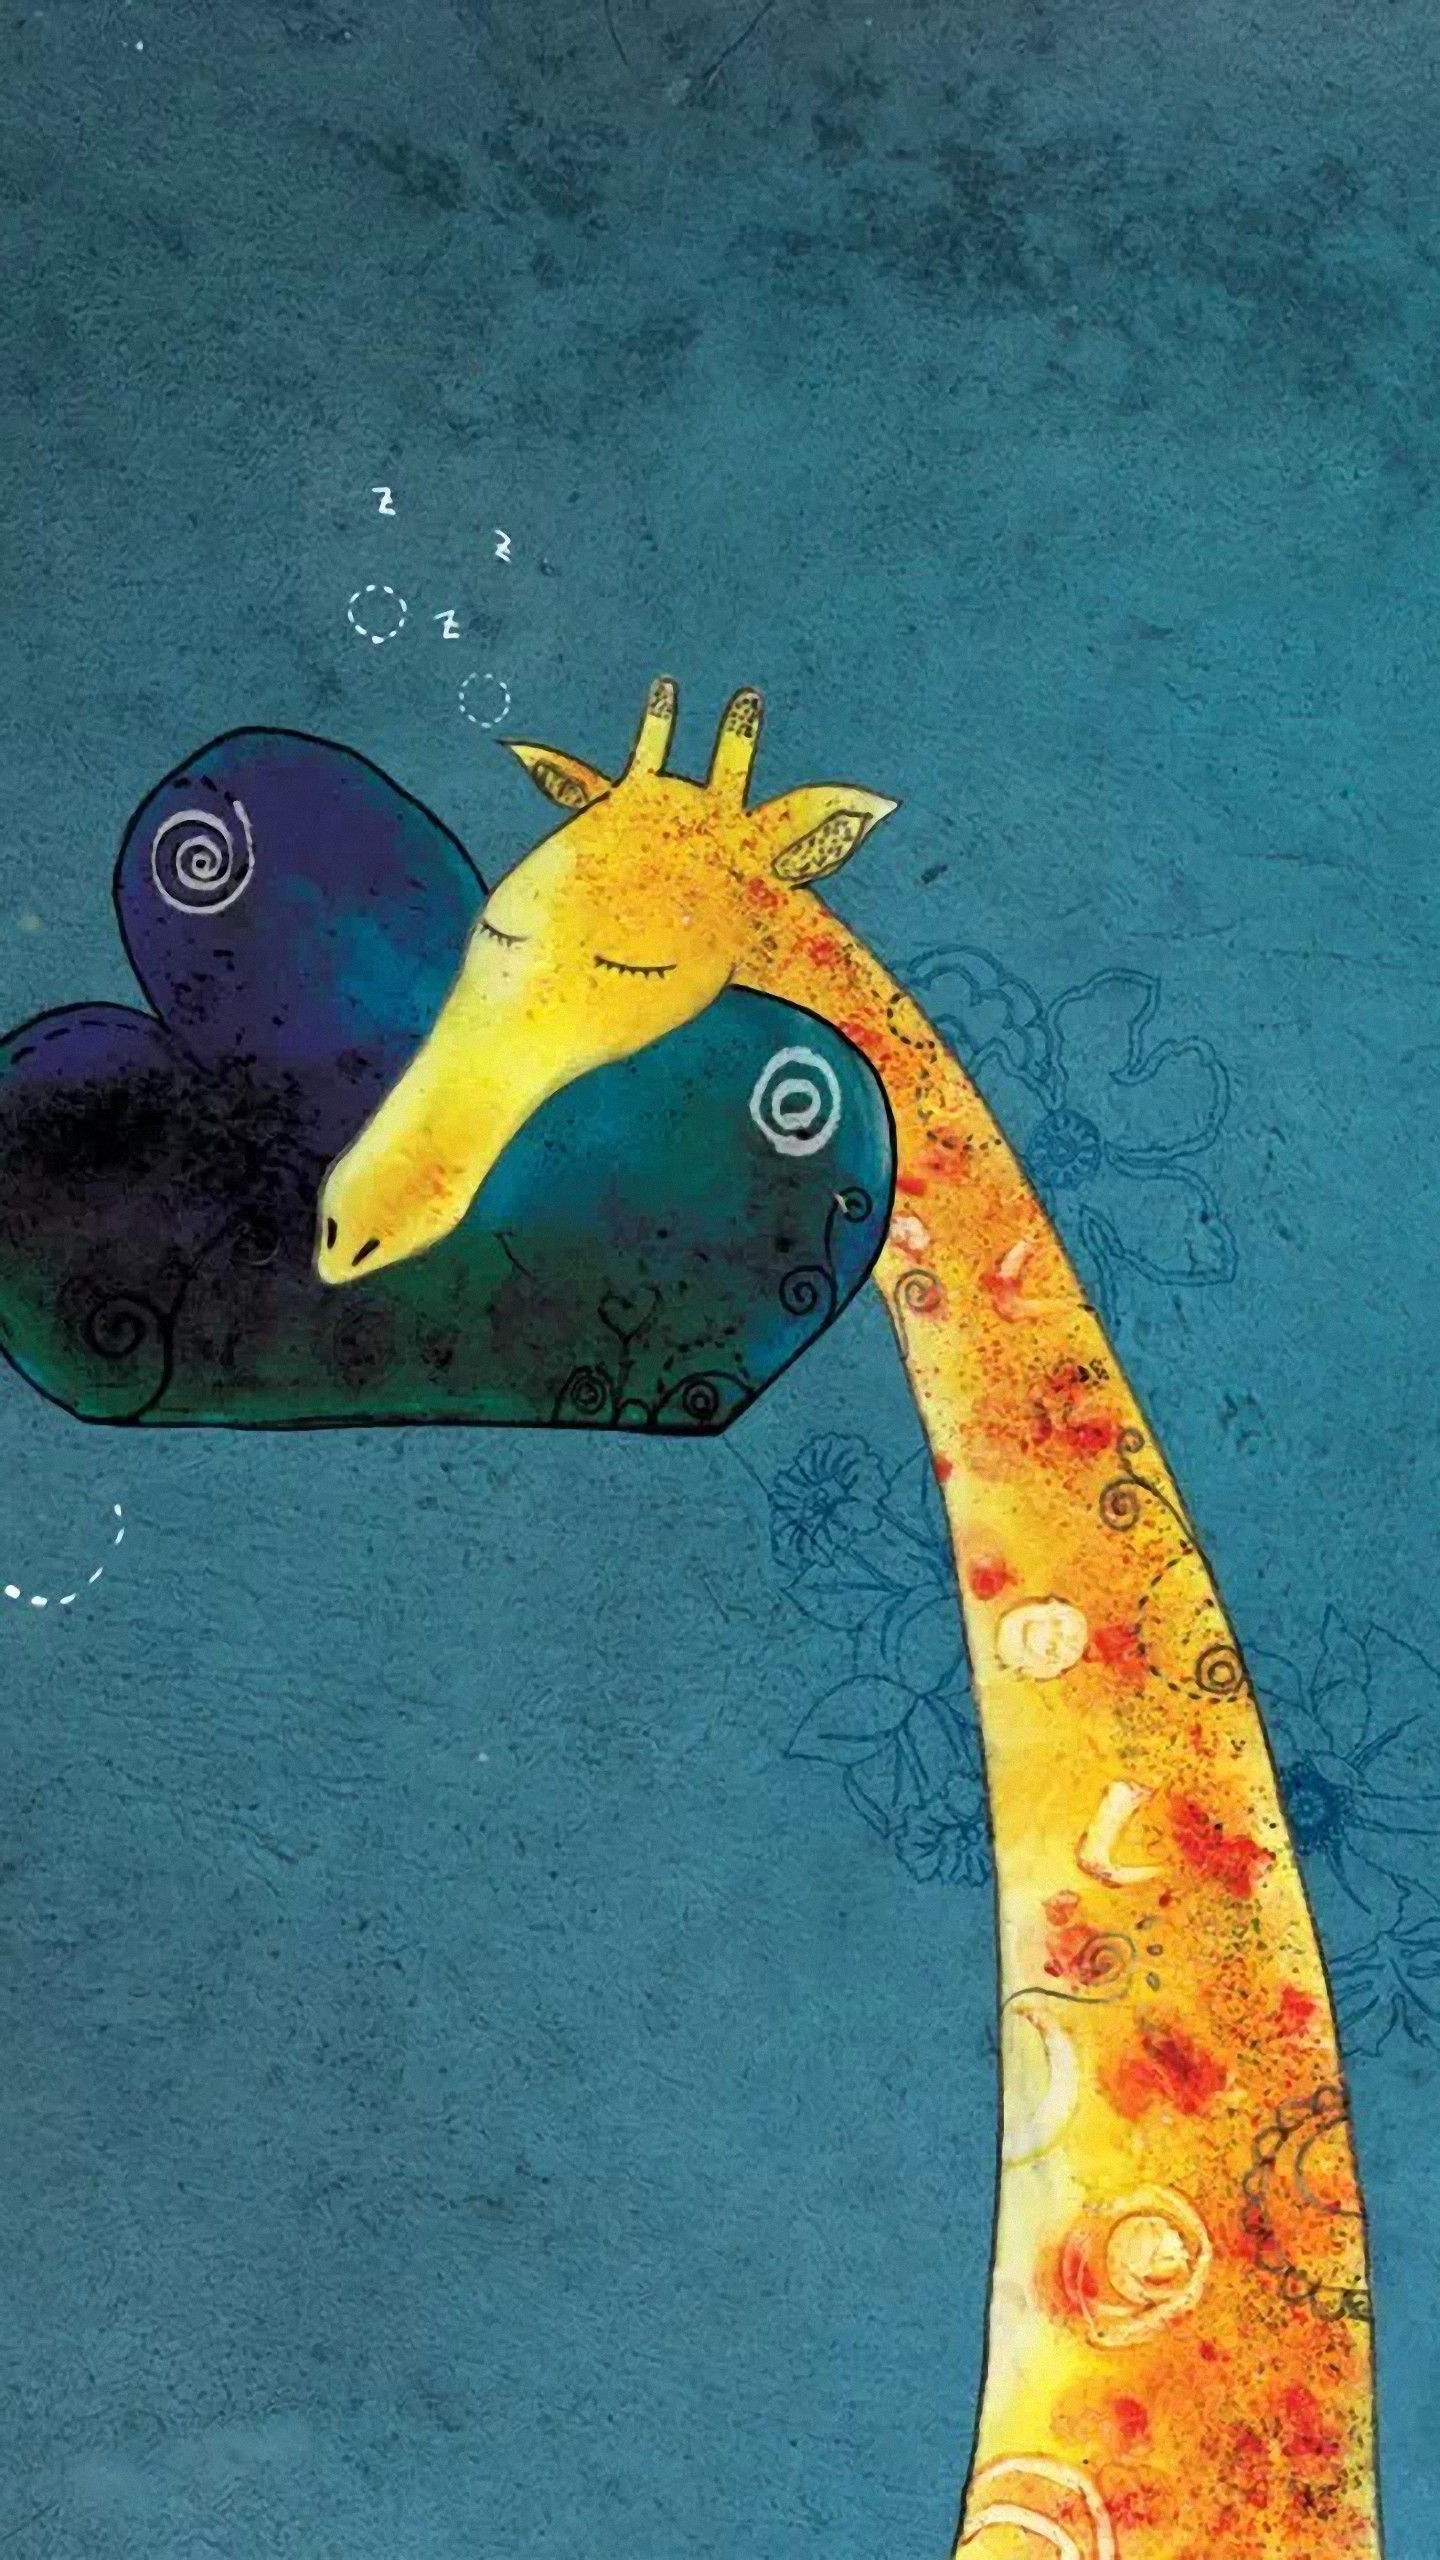 Customize your Galaxy with this high definition Giraffe Pillow wallpaper  from HD Phone Wallpapers!